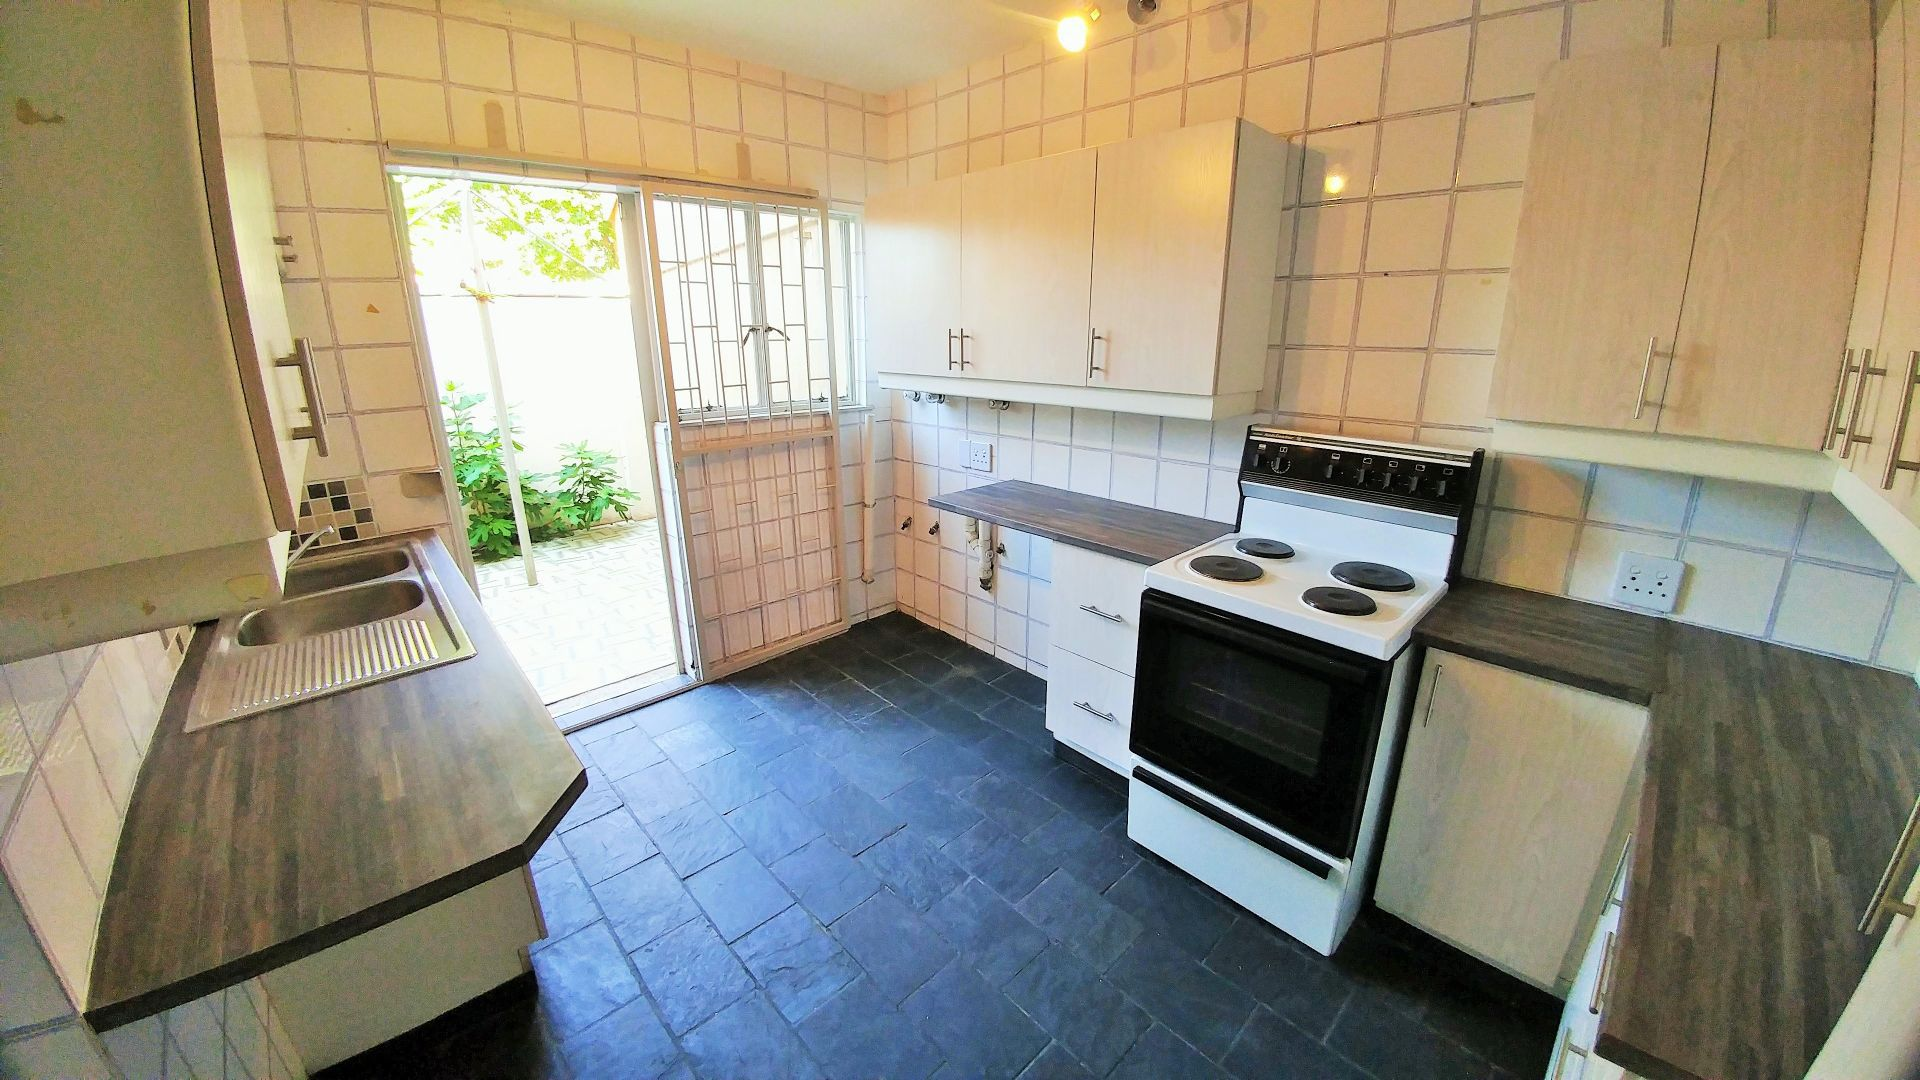 Potchefstroom Central property for sale. Ref No: 13547446. Picture no 7